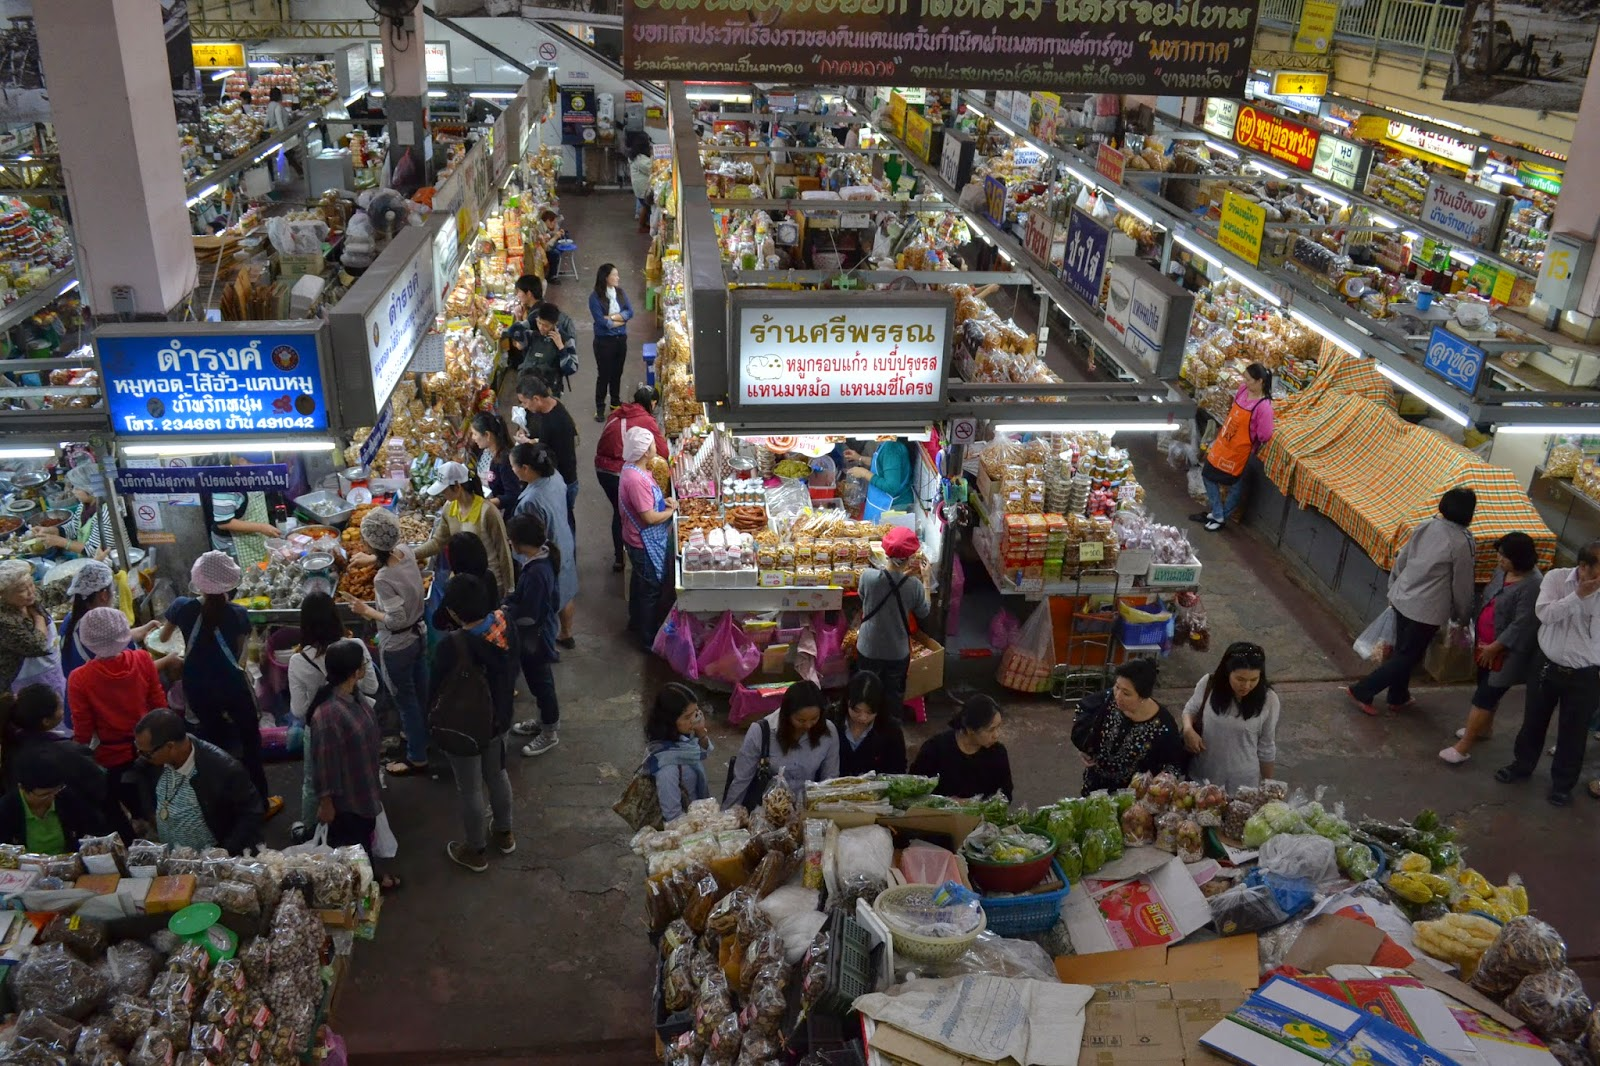 Chiang Mai, Thailande, voyage, marché, warorot market